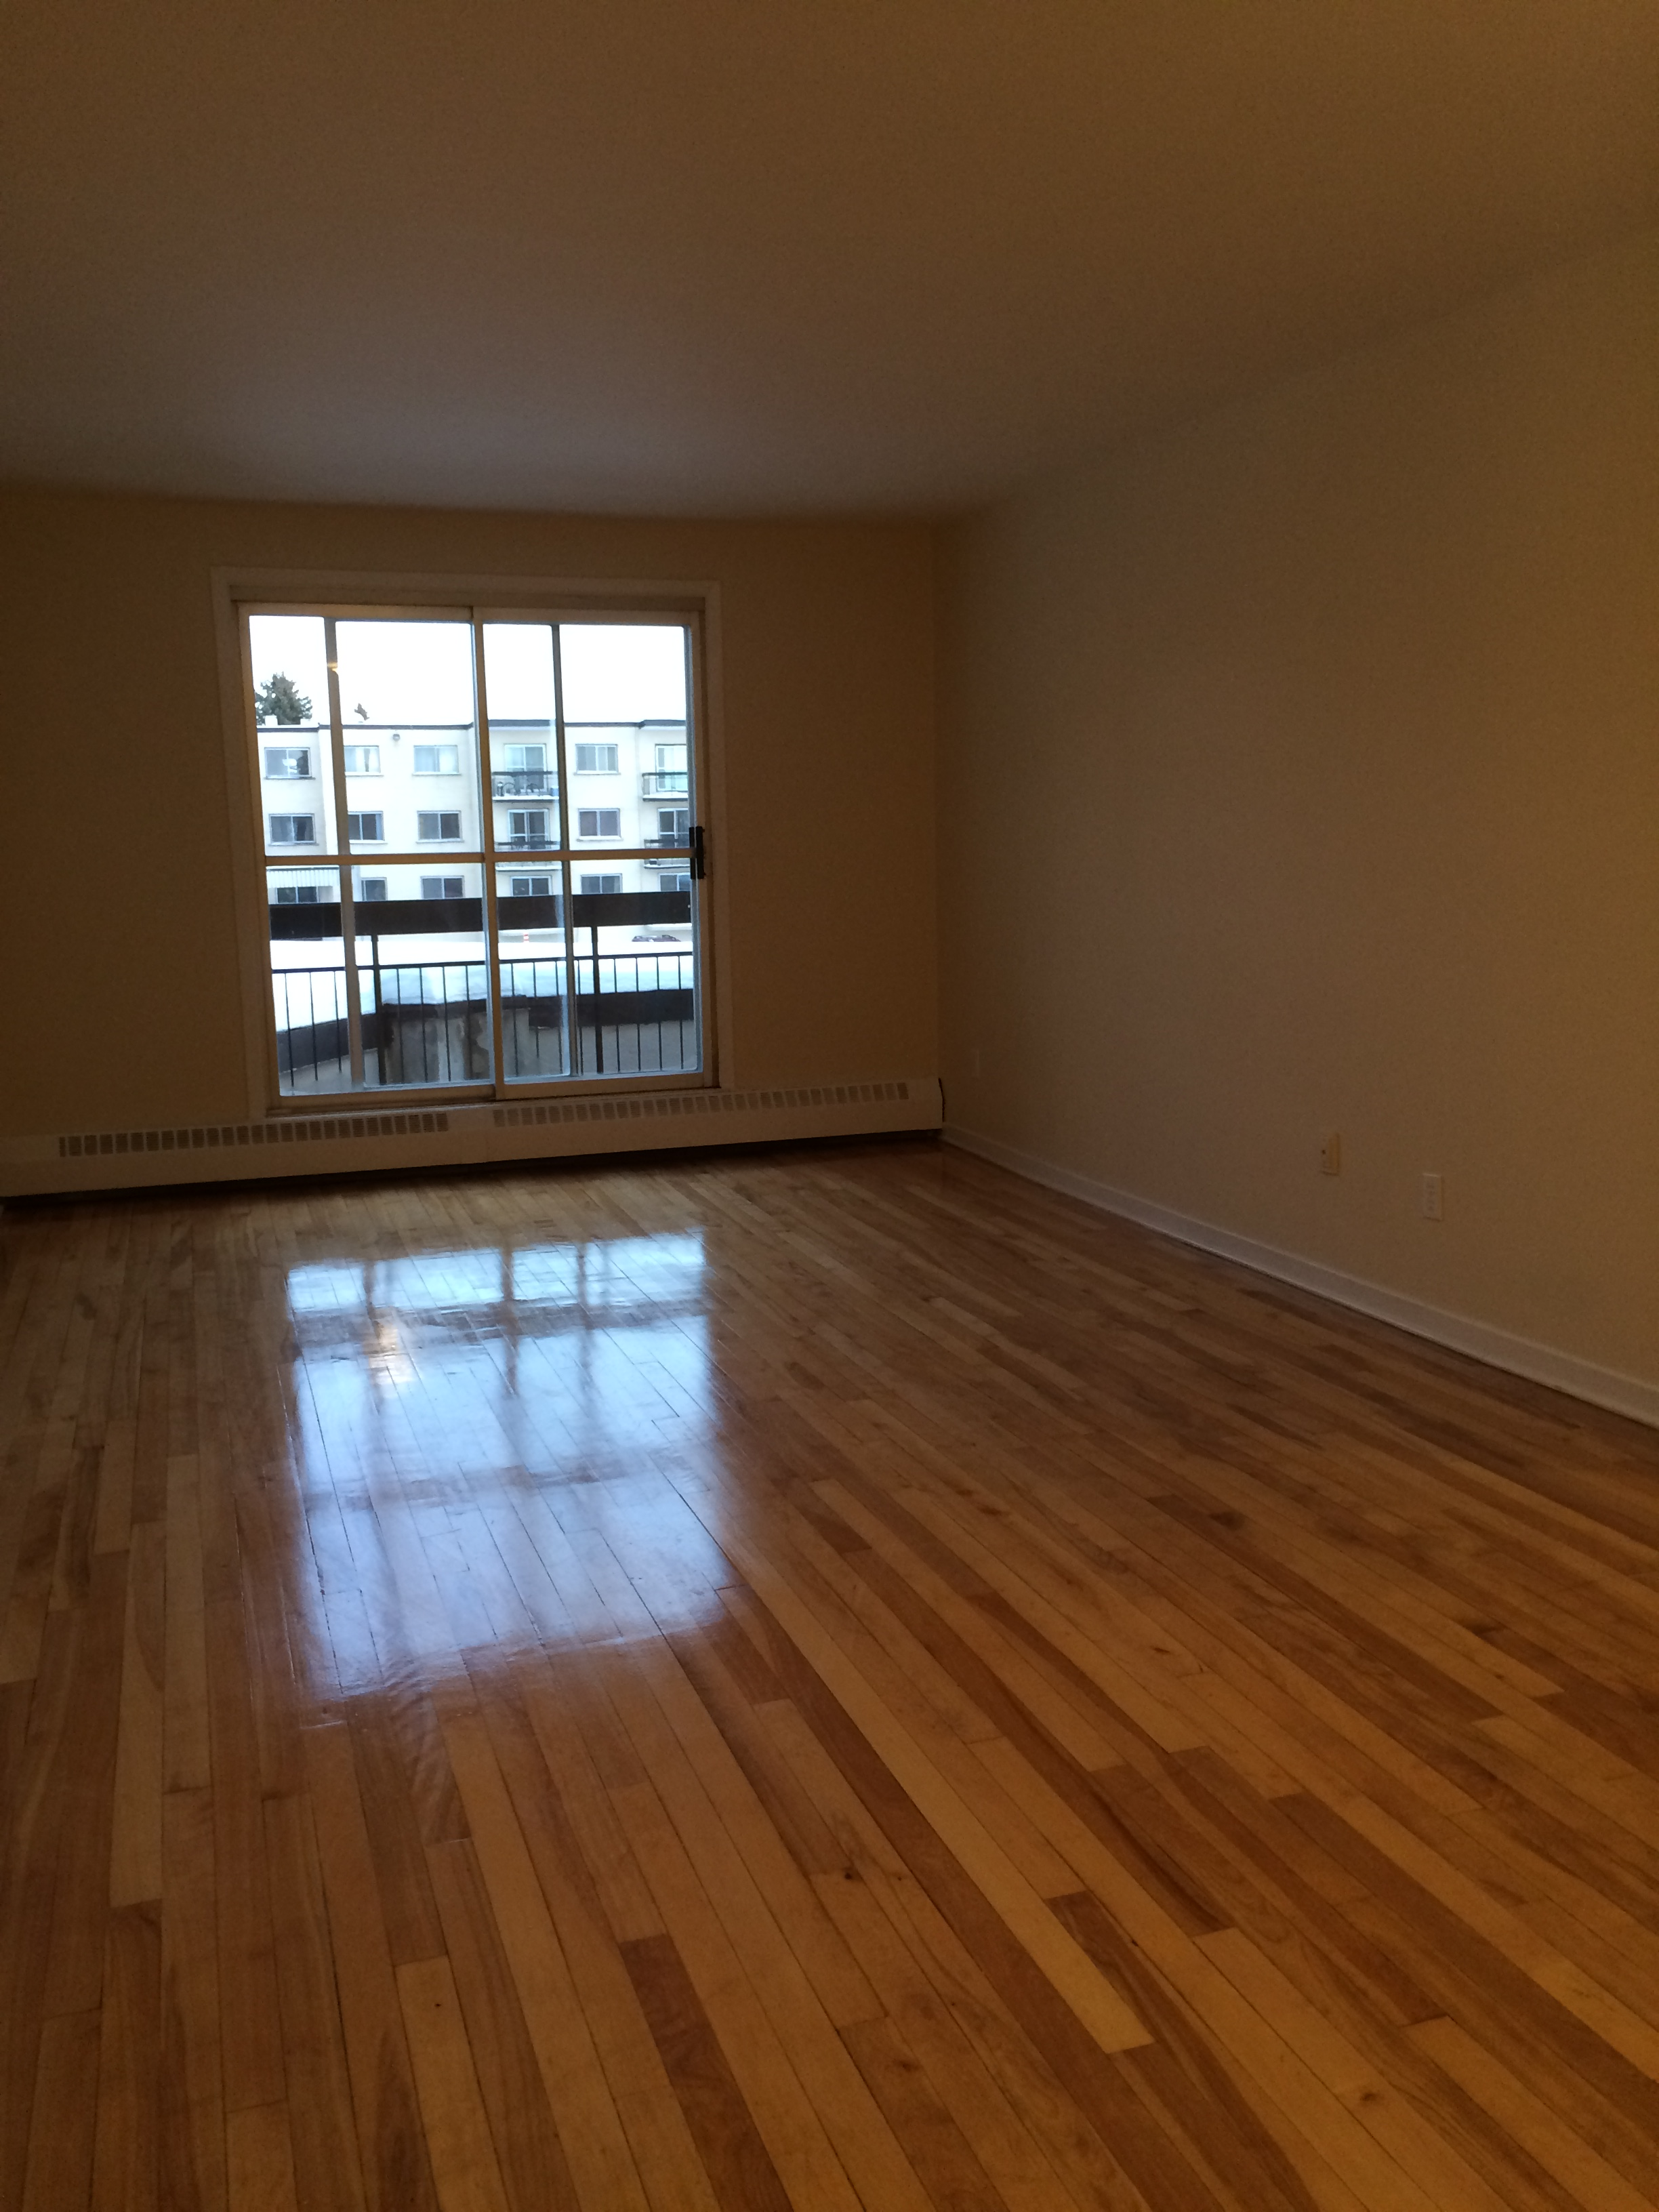 1 bedroom Apartments for rent in Pierrefonds-Roxboro at Place Riviera - Photo 04 - RentQuebecApartments – L35788